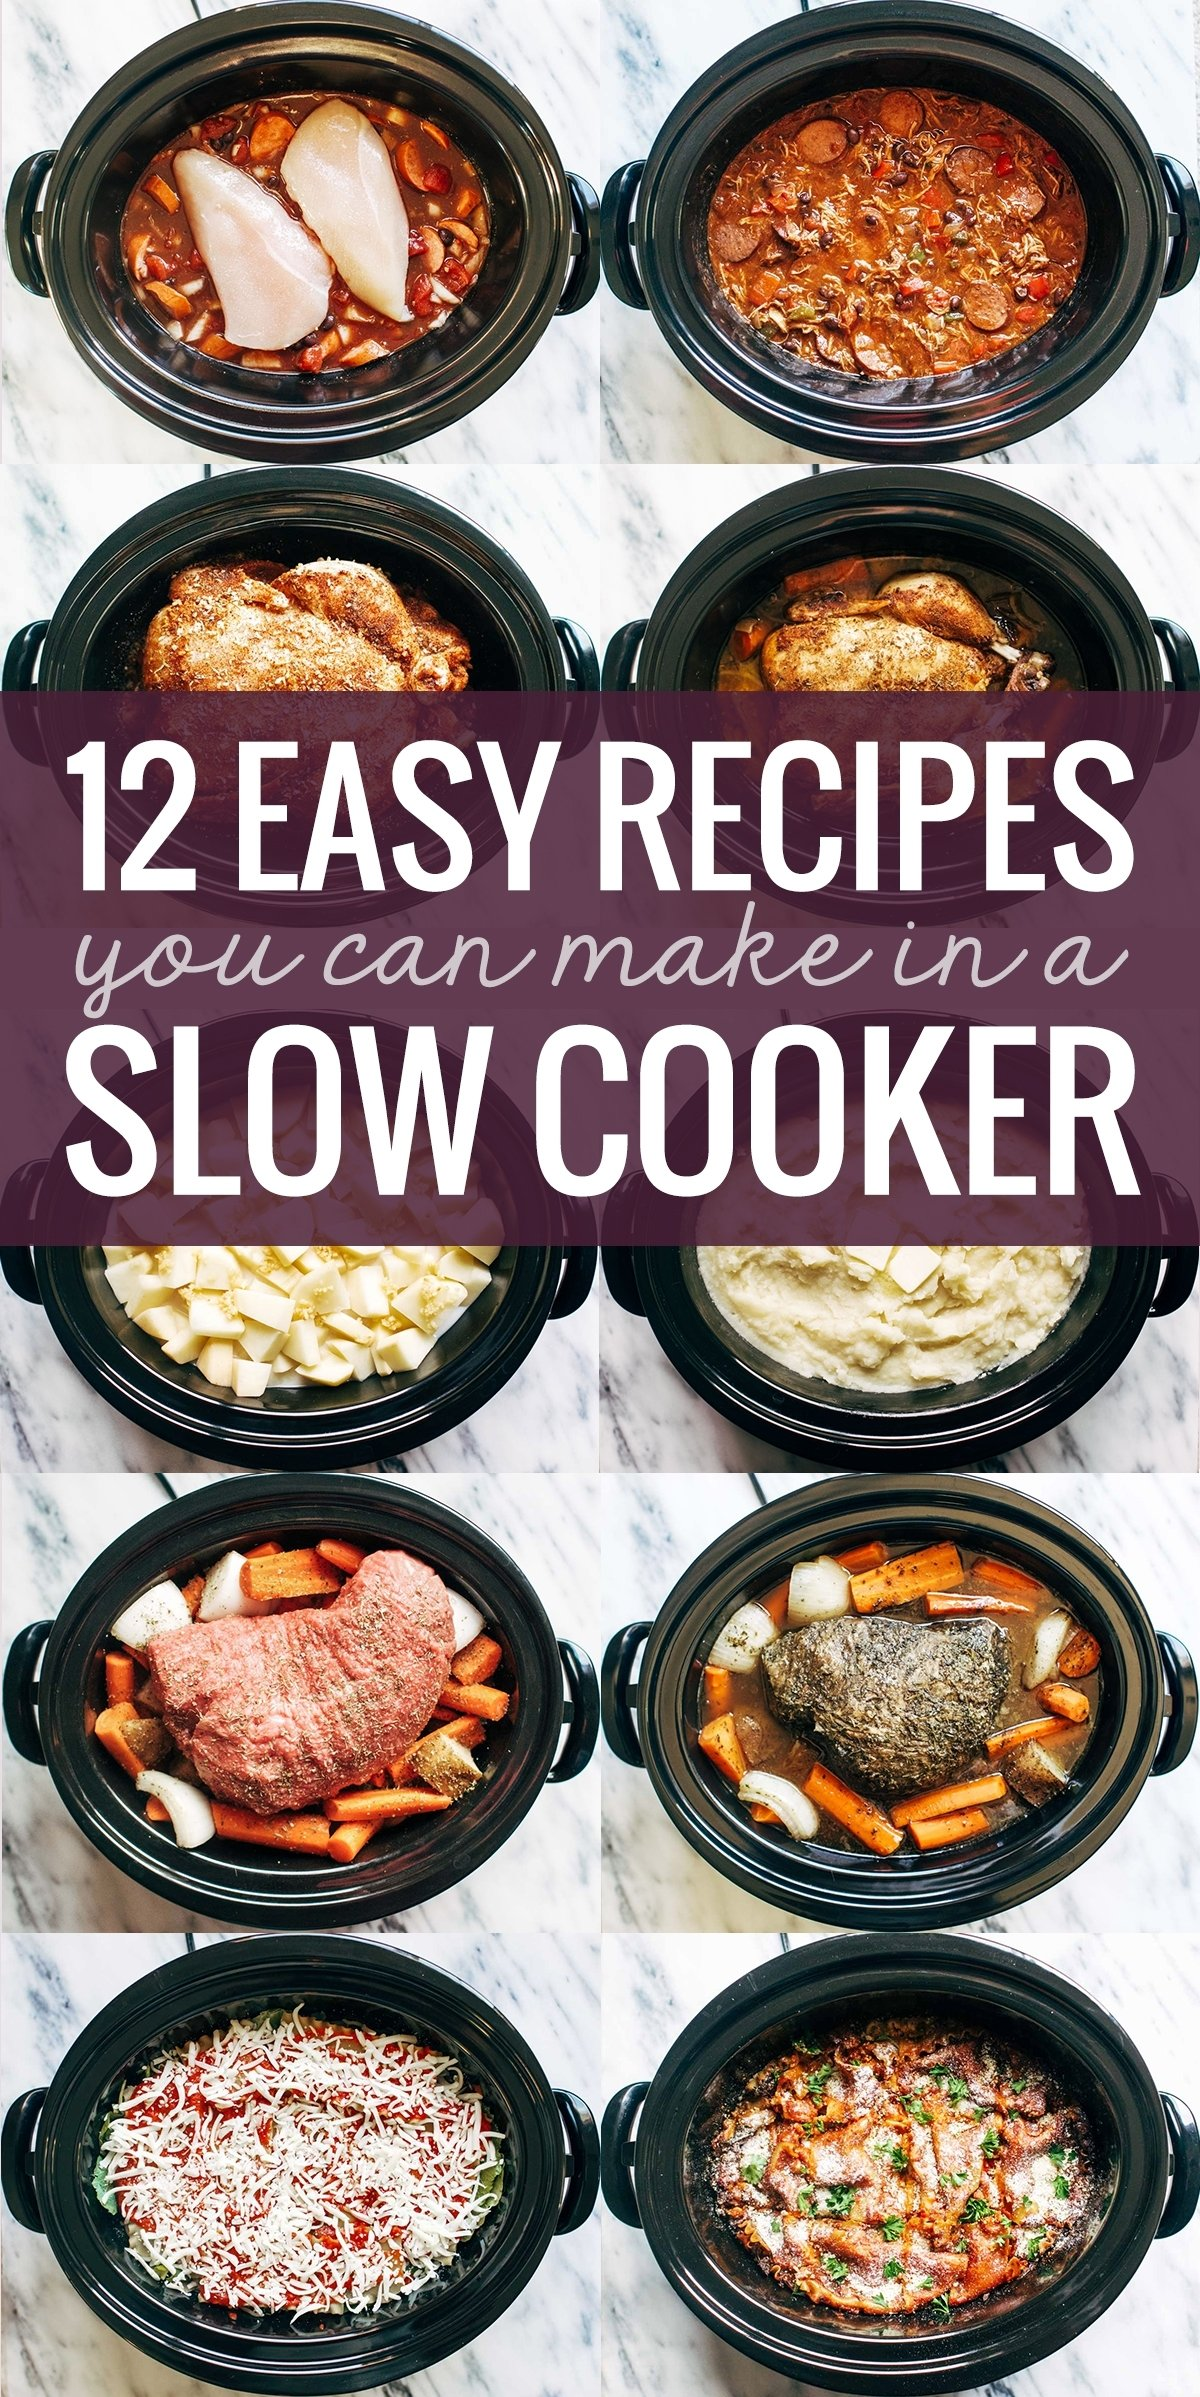 10 Stylish Ideas For Crock Pot Meals 12 easy recipes you can make in a slow cooker pinch of yum 1 2021